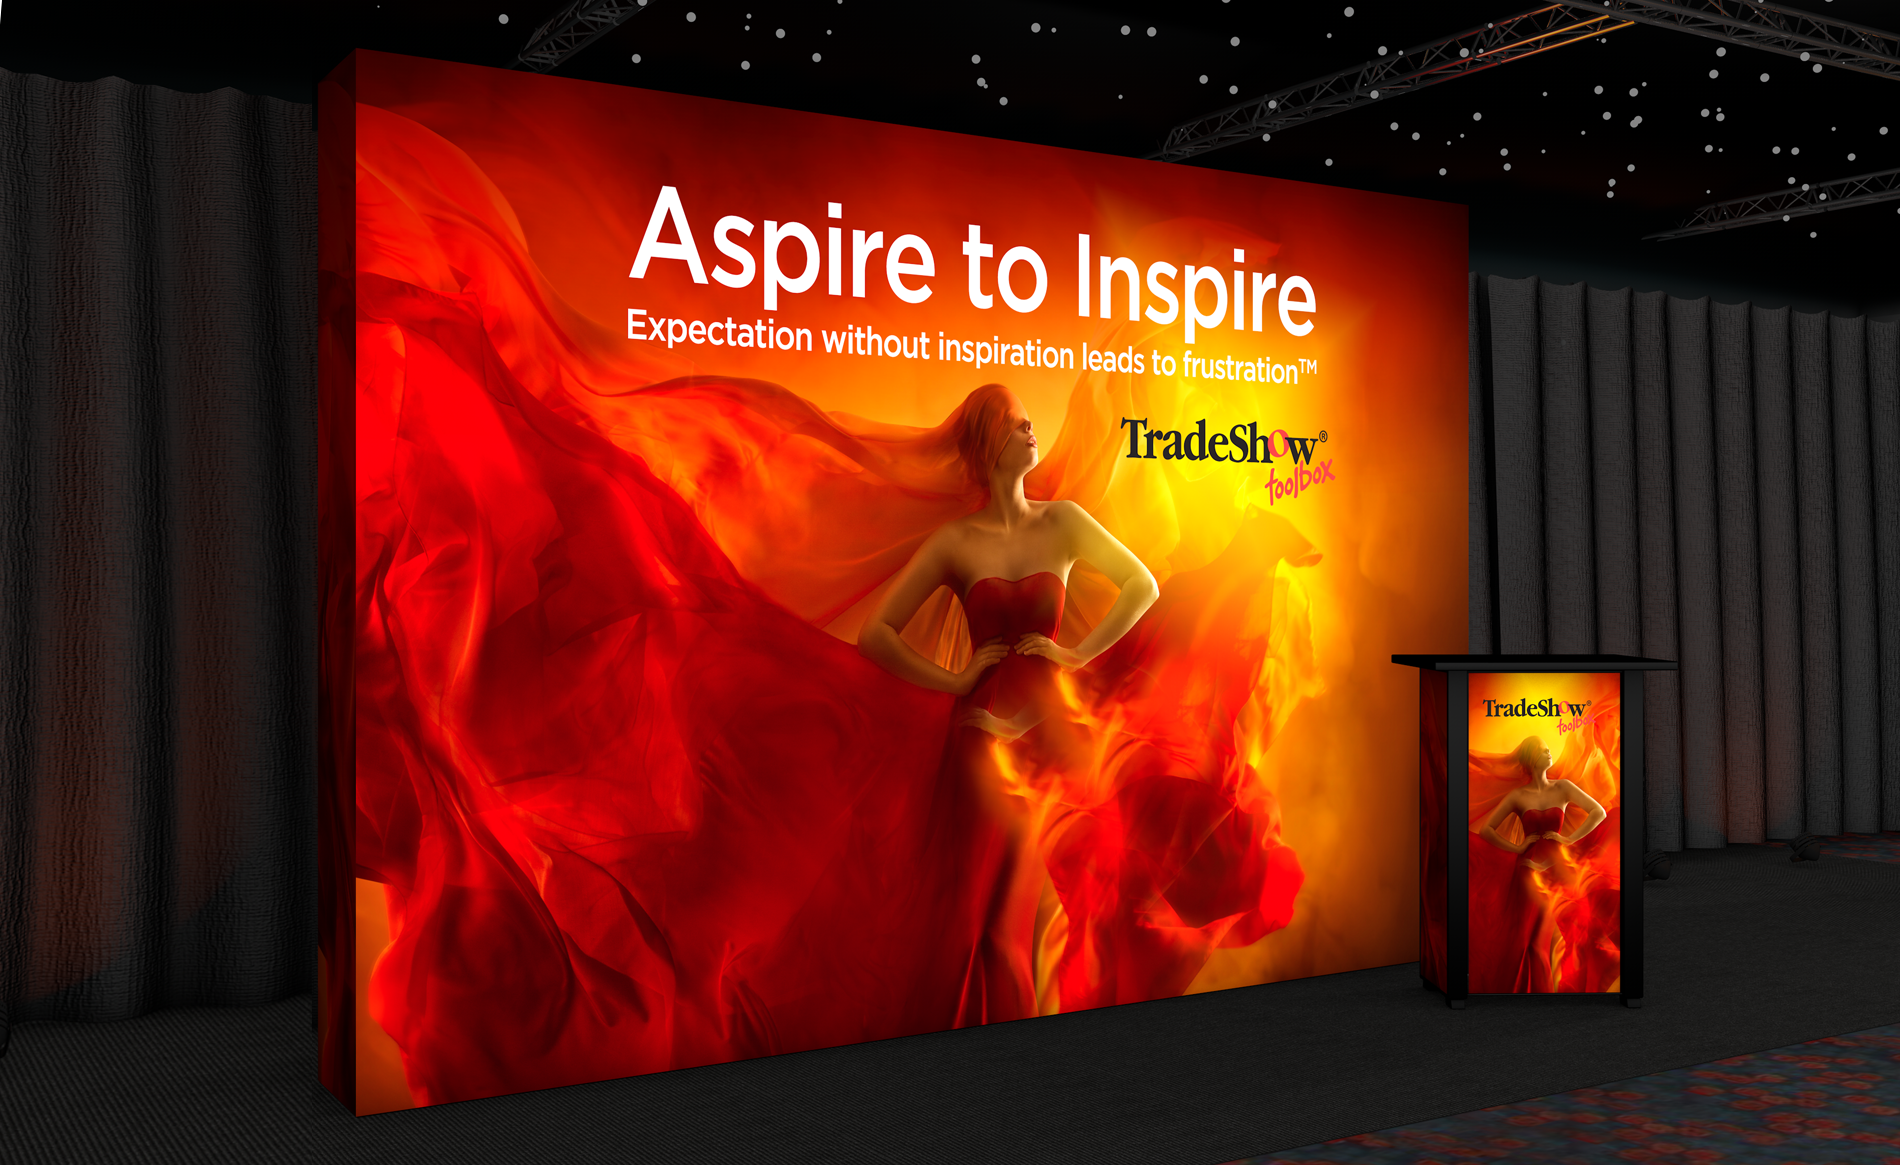 Aspire-to-Inspire_Immerse1900x1165.png